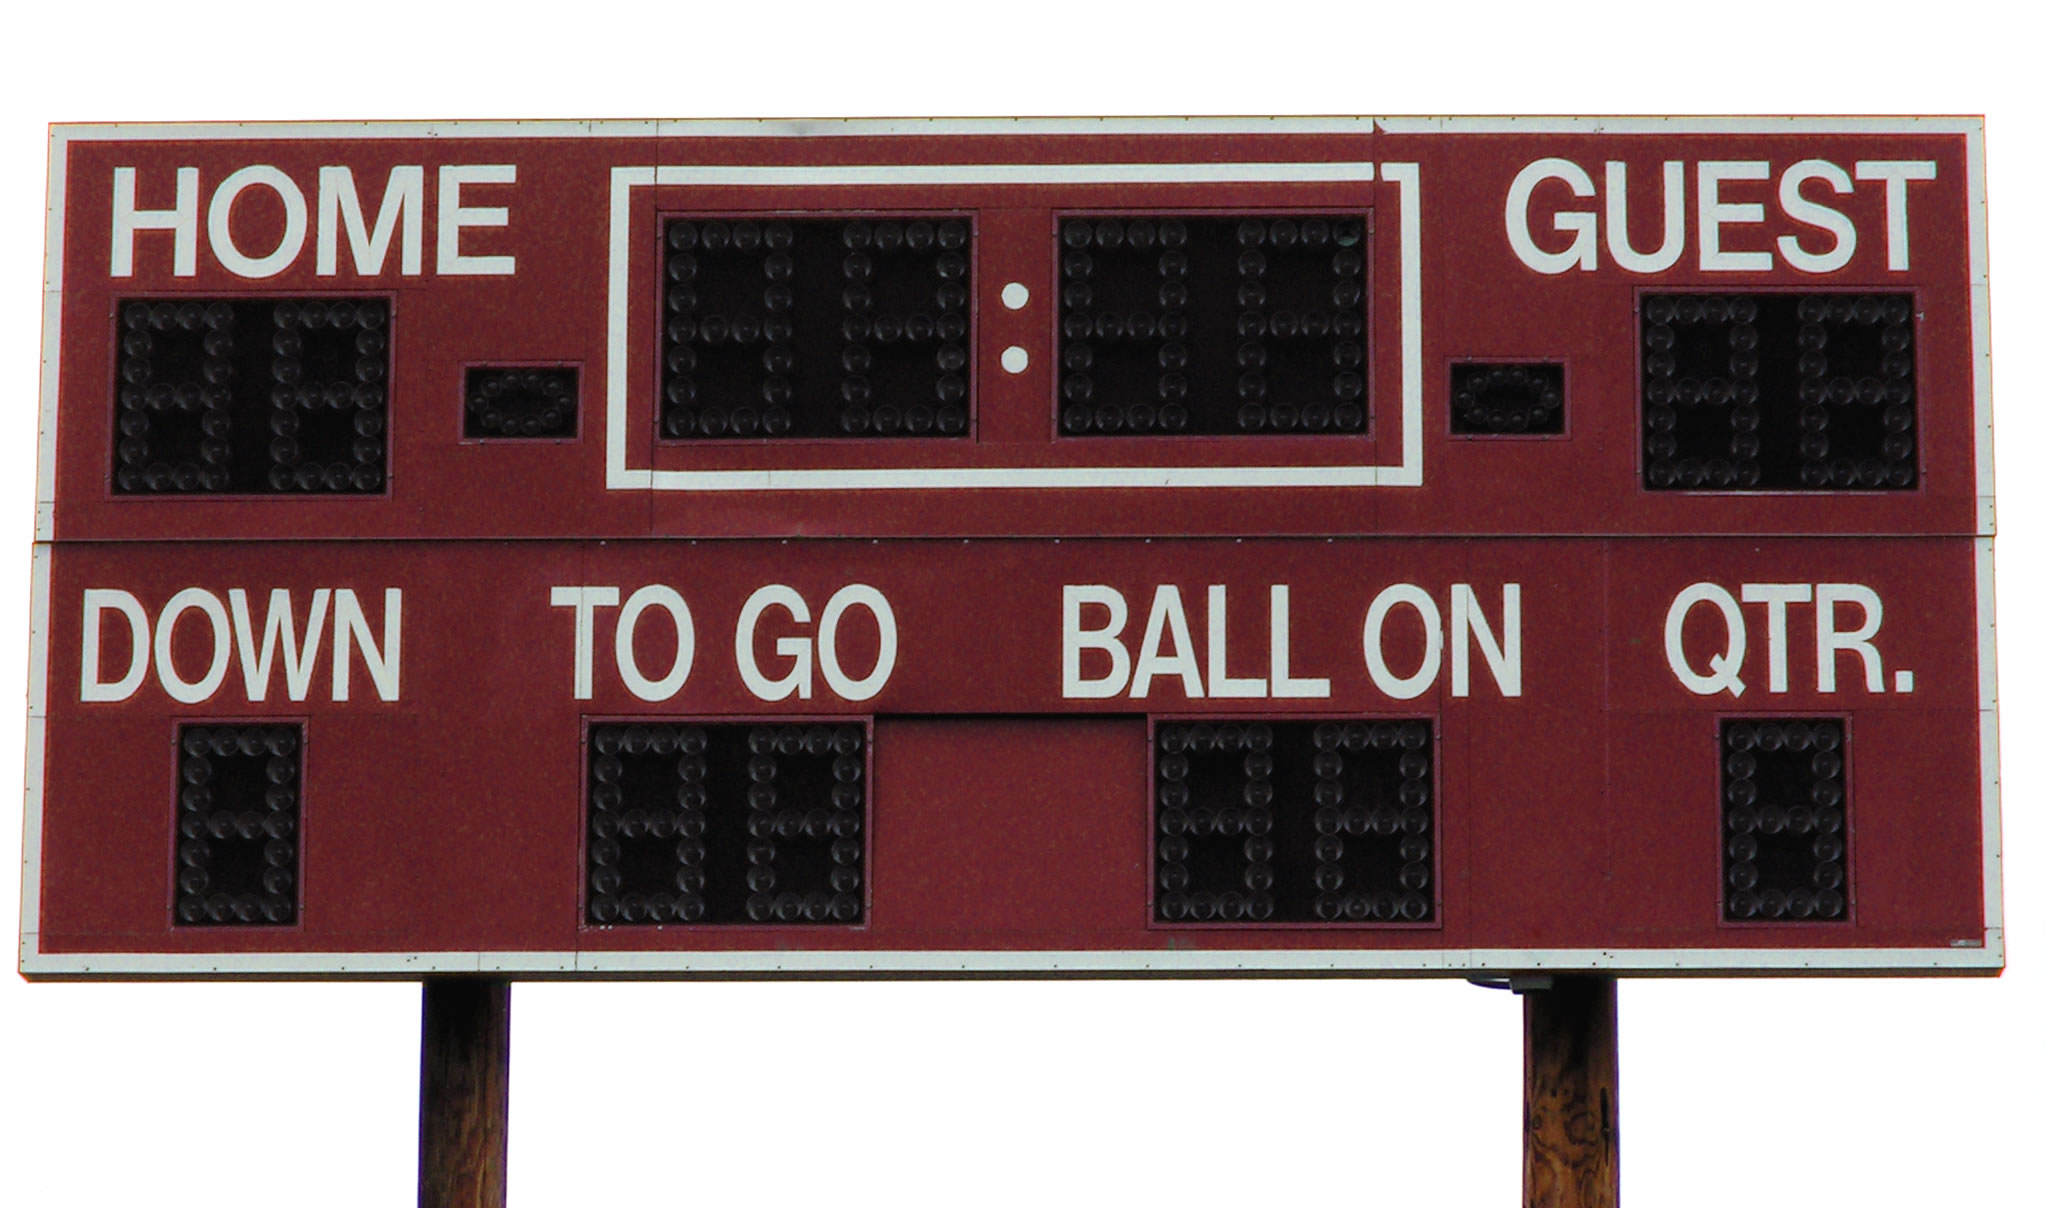 Your Business Goals -The Danger of Watching the Scoreboard